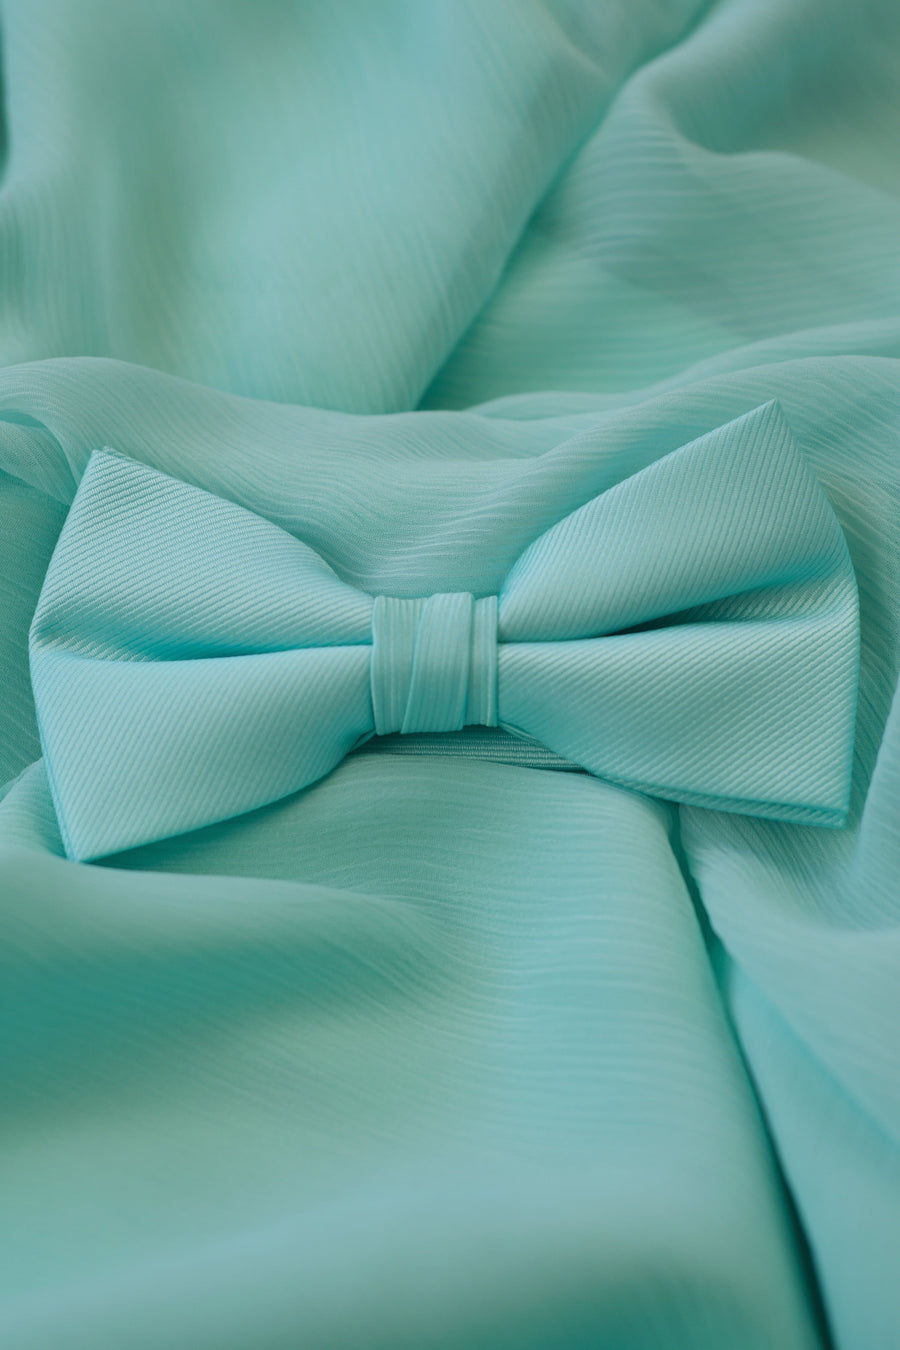 Bridesmaid Dresses Canada - Classic Groomsmen Bow Ties - BridesMade Online